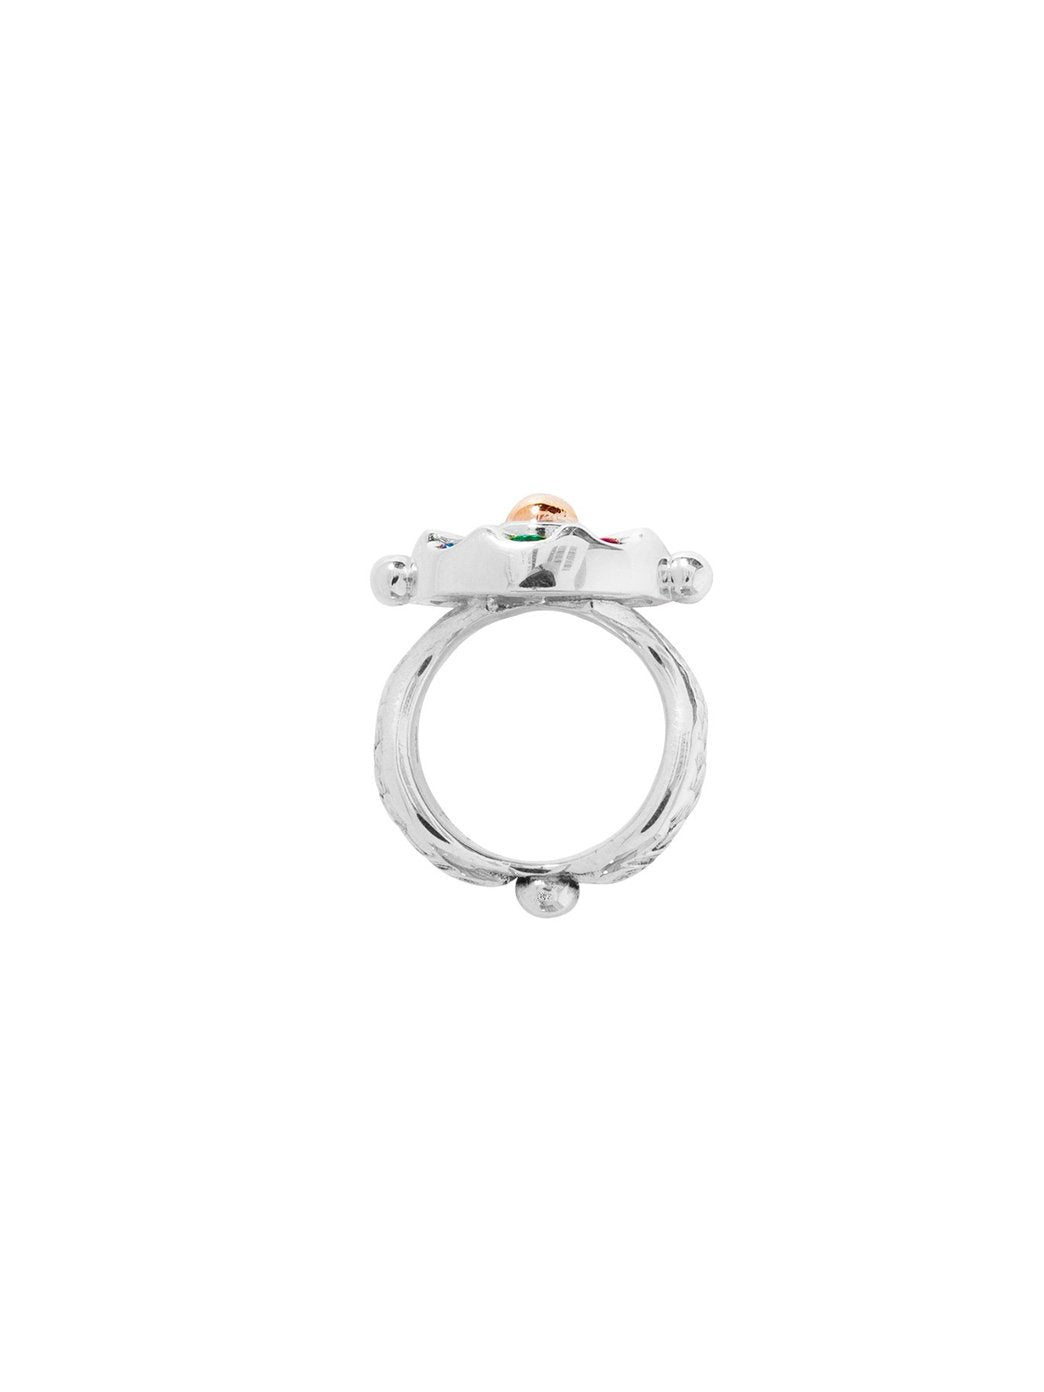 Fiorina Jewellery Chakra Wheel Ring Side View